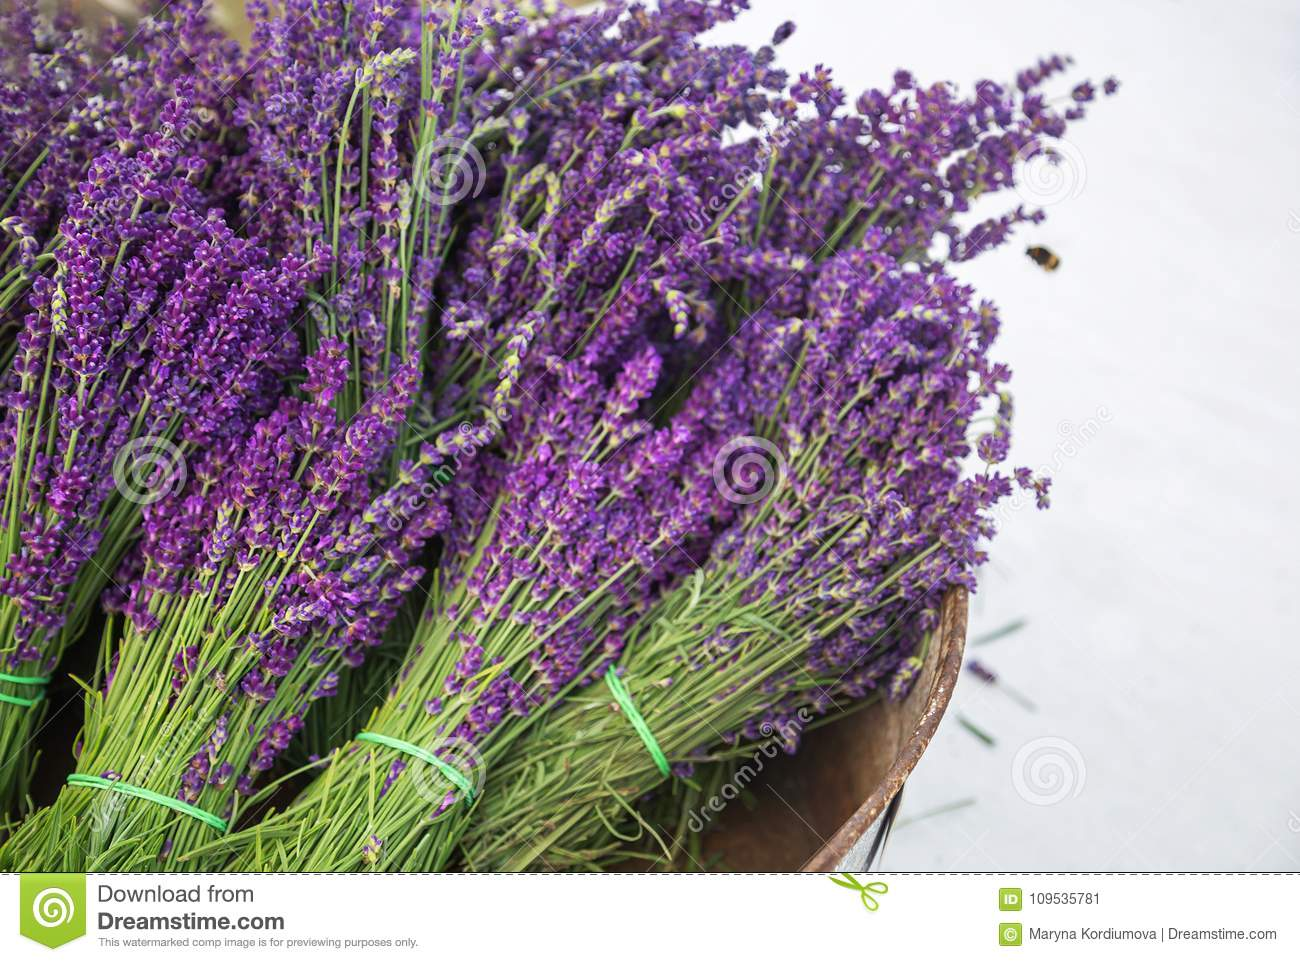 Lavender bouquets in basket and bee. Lavender vintage with fresh, beautiful purple lavender flowers blossoms.